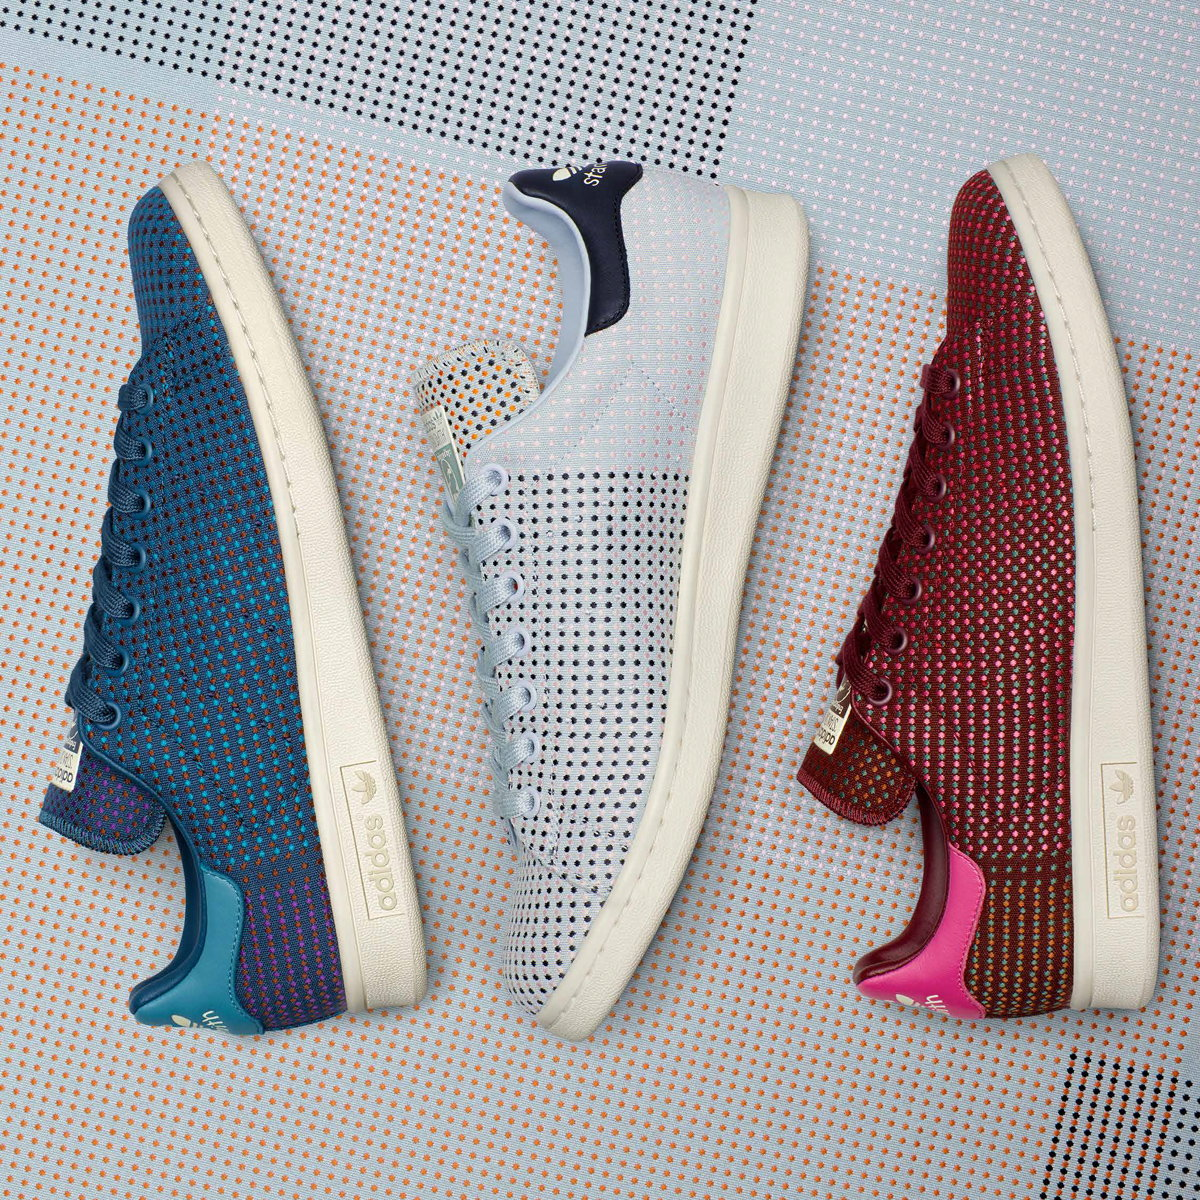 adidas Originals x Kvadrat Launch Stan Smiths